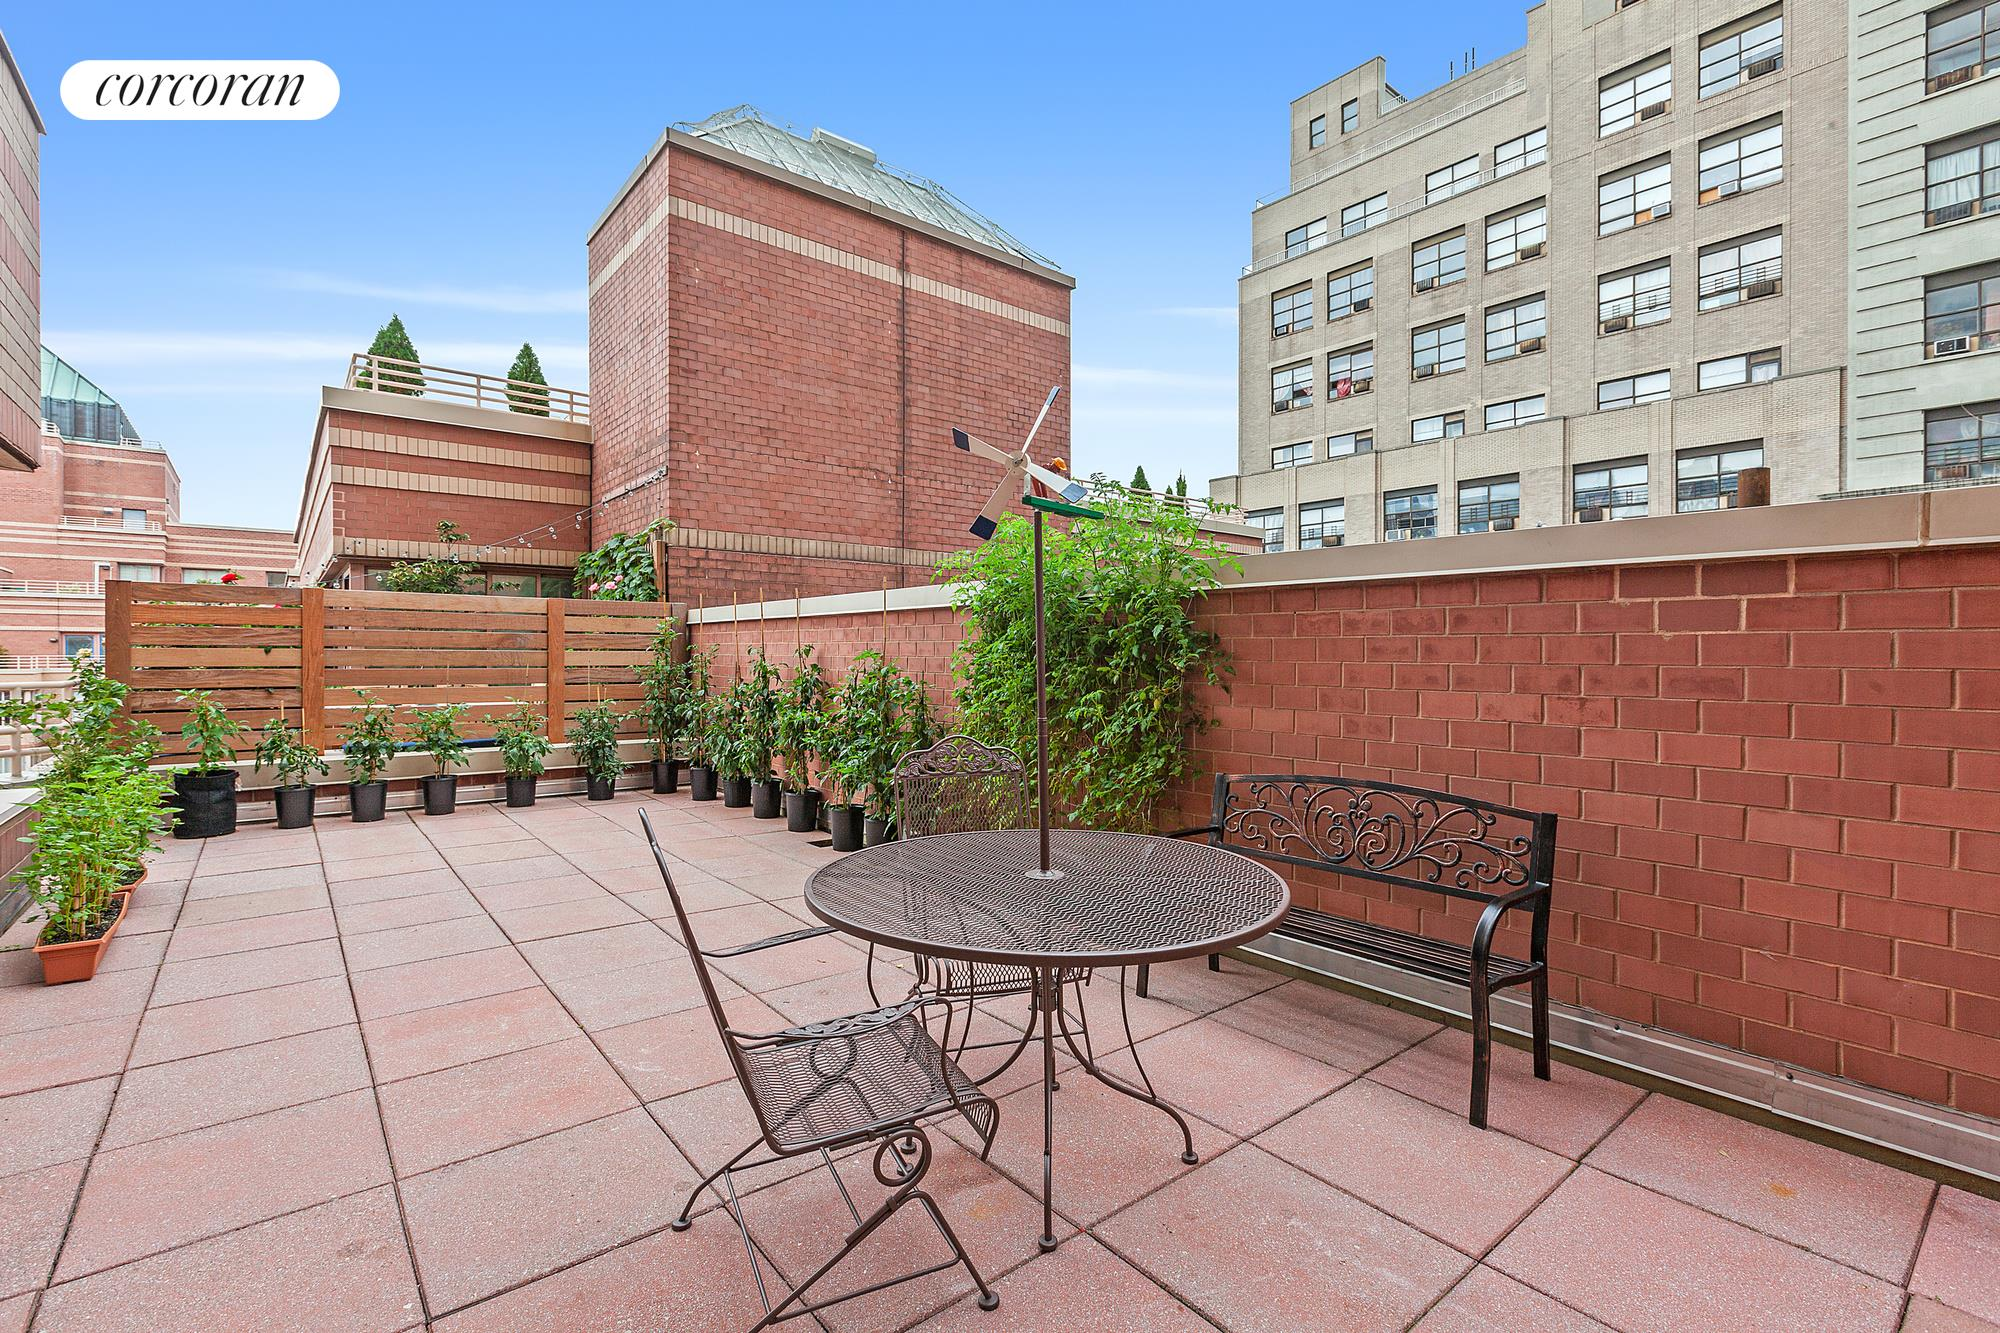 "Residence 6LL is a uniquely large corner one bedroom home with 10'+ high ceilings and with it's very own 482 square foot private terrace. The oversized living room features seven windows with West and North exposures and floor to ceiling sliding doors to access the private terrace. New floors throughout, great closet space and a spacious separate kitchen large enough to have a breakfast table. The building has a live-in Resident Manager and the amenities include 24-hour Concierge, doorman, eight laundry rooms, and a ""Resident's only"" courtyard and four roof decks with open views. Connected to the building is Elite New York Sports Club 40,000 sq. ft. newest gym with the latest technology, 25-meter saltwater pool, sauna, exercise studio and virtual reality spin room with an immersive 30-foot video wall. Monthly and annual memberships available. The Residences at Worldwide Plaza is a full-service condominium ideally located in the heart of the vibrant Manhattan's theater district and the Midtown Financial District, close to Central Park, Lincoln Center, the Hudson River Park, Rockefeller Center, St. Patrick's Cathedral, numerous restaurants, museums and points of interest. The garage on the premises is available to residents for a nominal fee. Minutes to the C, E, 1, W, N, R, B, D, F and M subway lines and cross-town buses. Capital Assessment of $231 per month from 4/1/21 to 9/1/22."